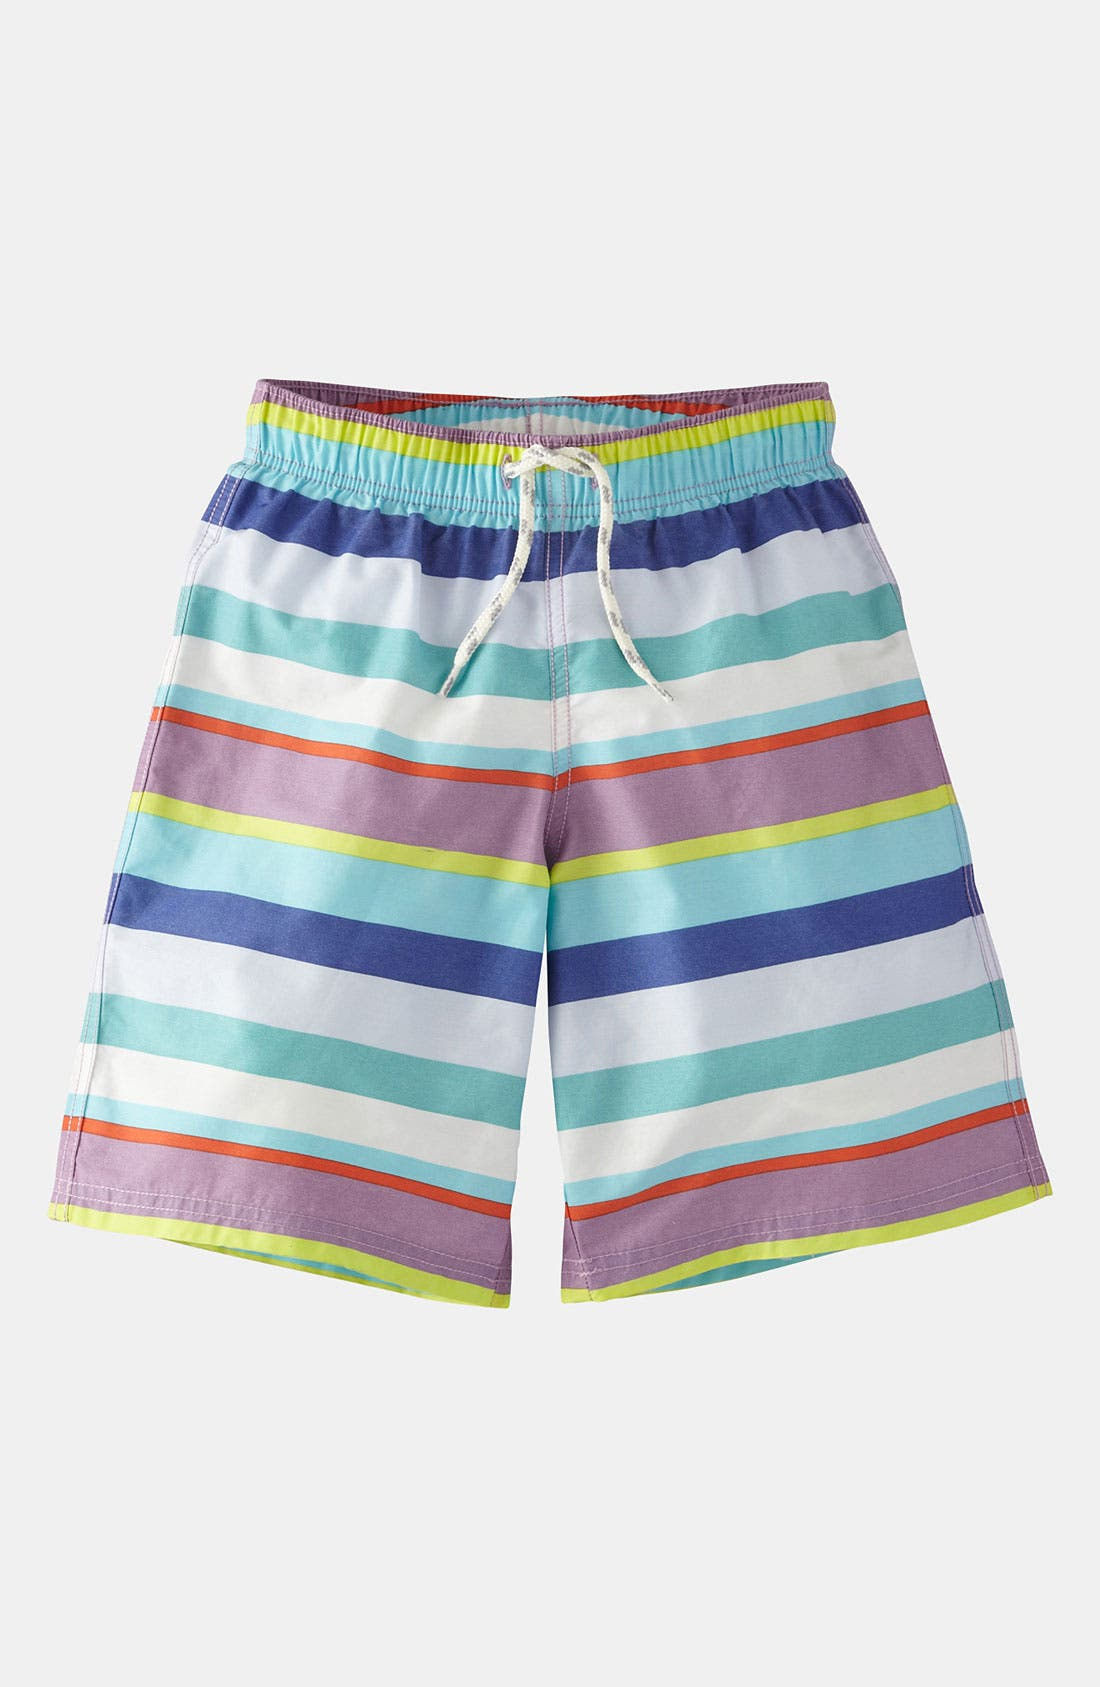 Alternate Image 1 Selected - Mini Boden Swim Shorts (Toddler, Little Boys & Big Boys)